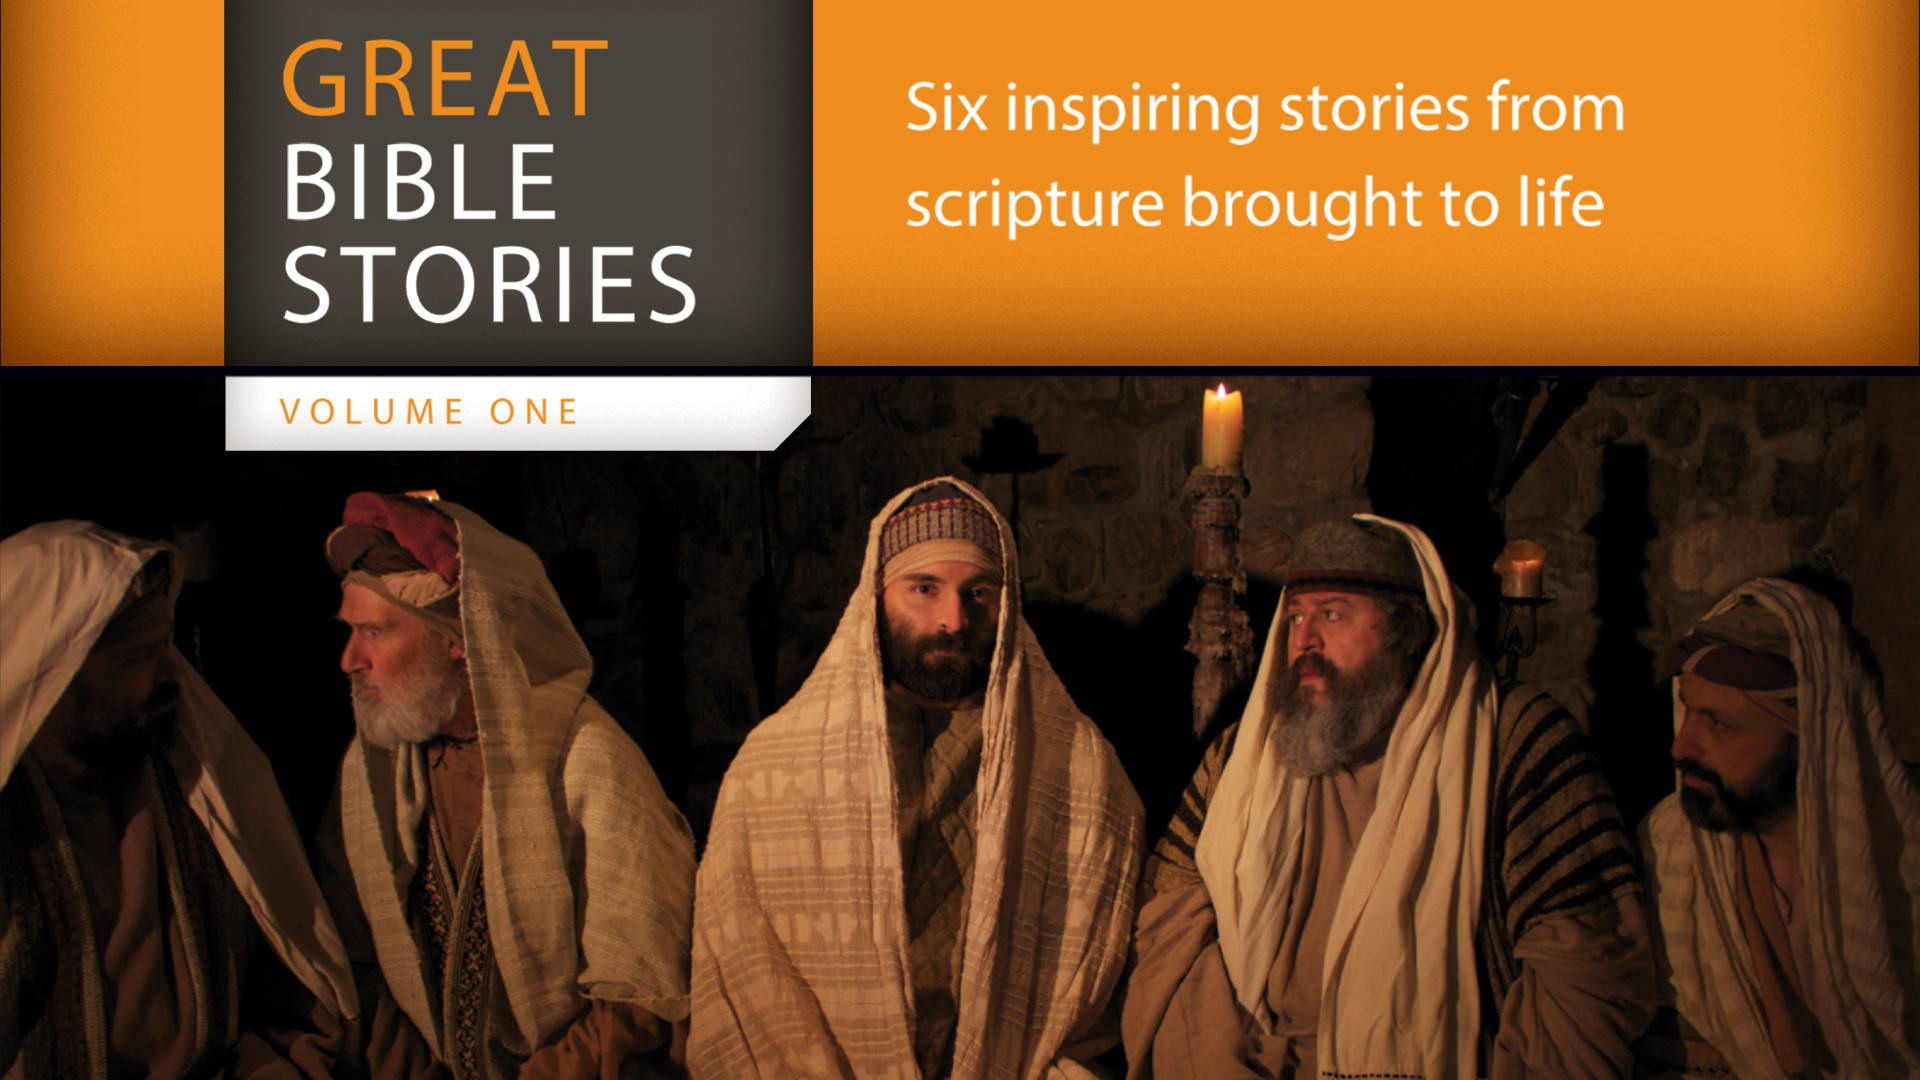 Great Bible Stories - Volume One